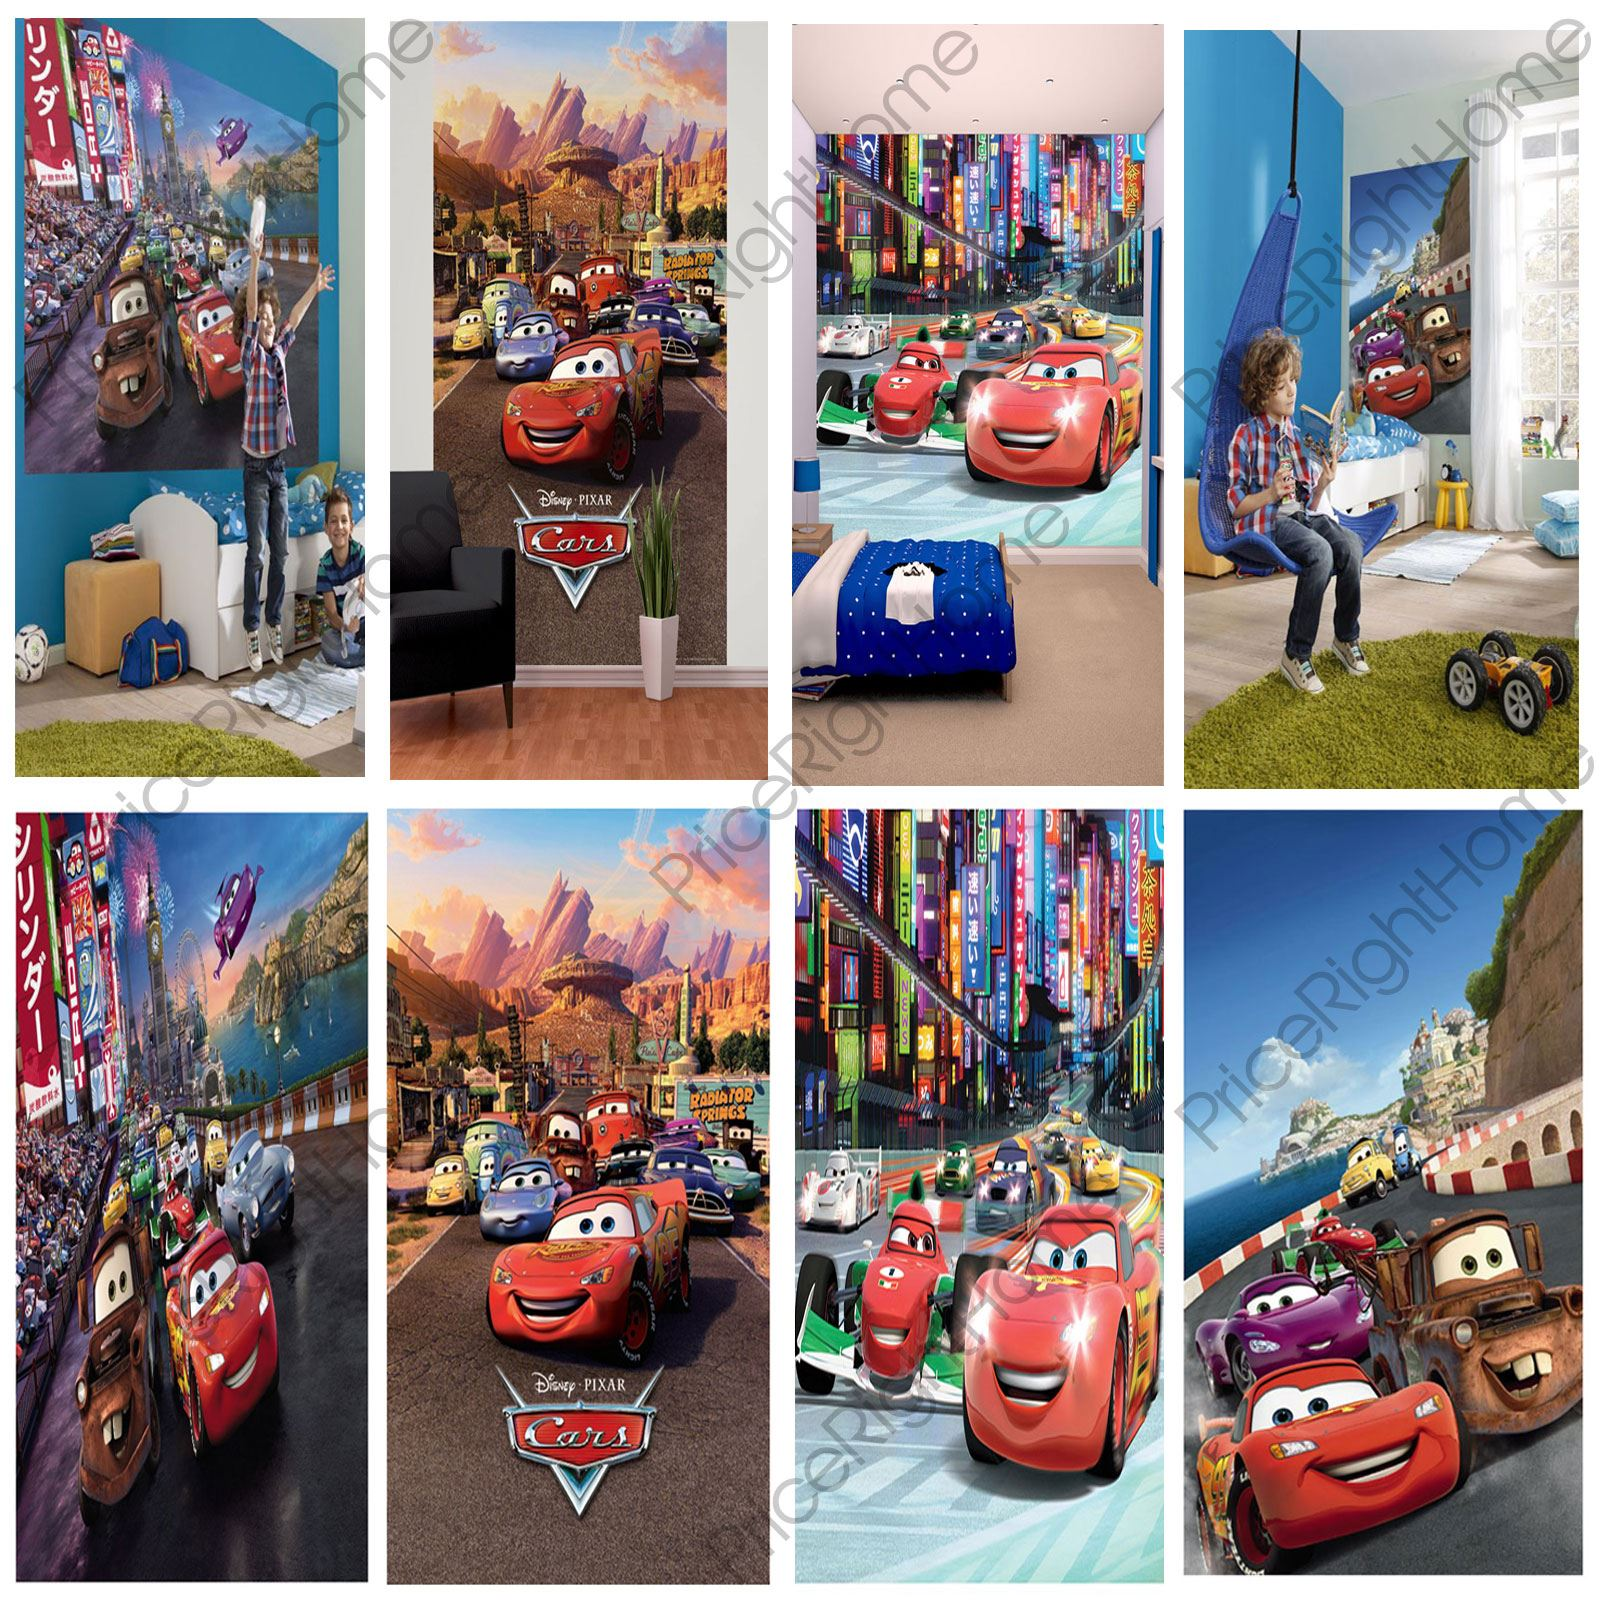 disney cars wall murals 6 designs available kids bedroom pics photos pictures disney cars photo wall mural cars